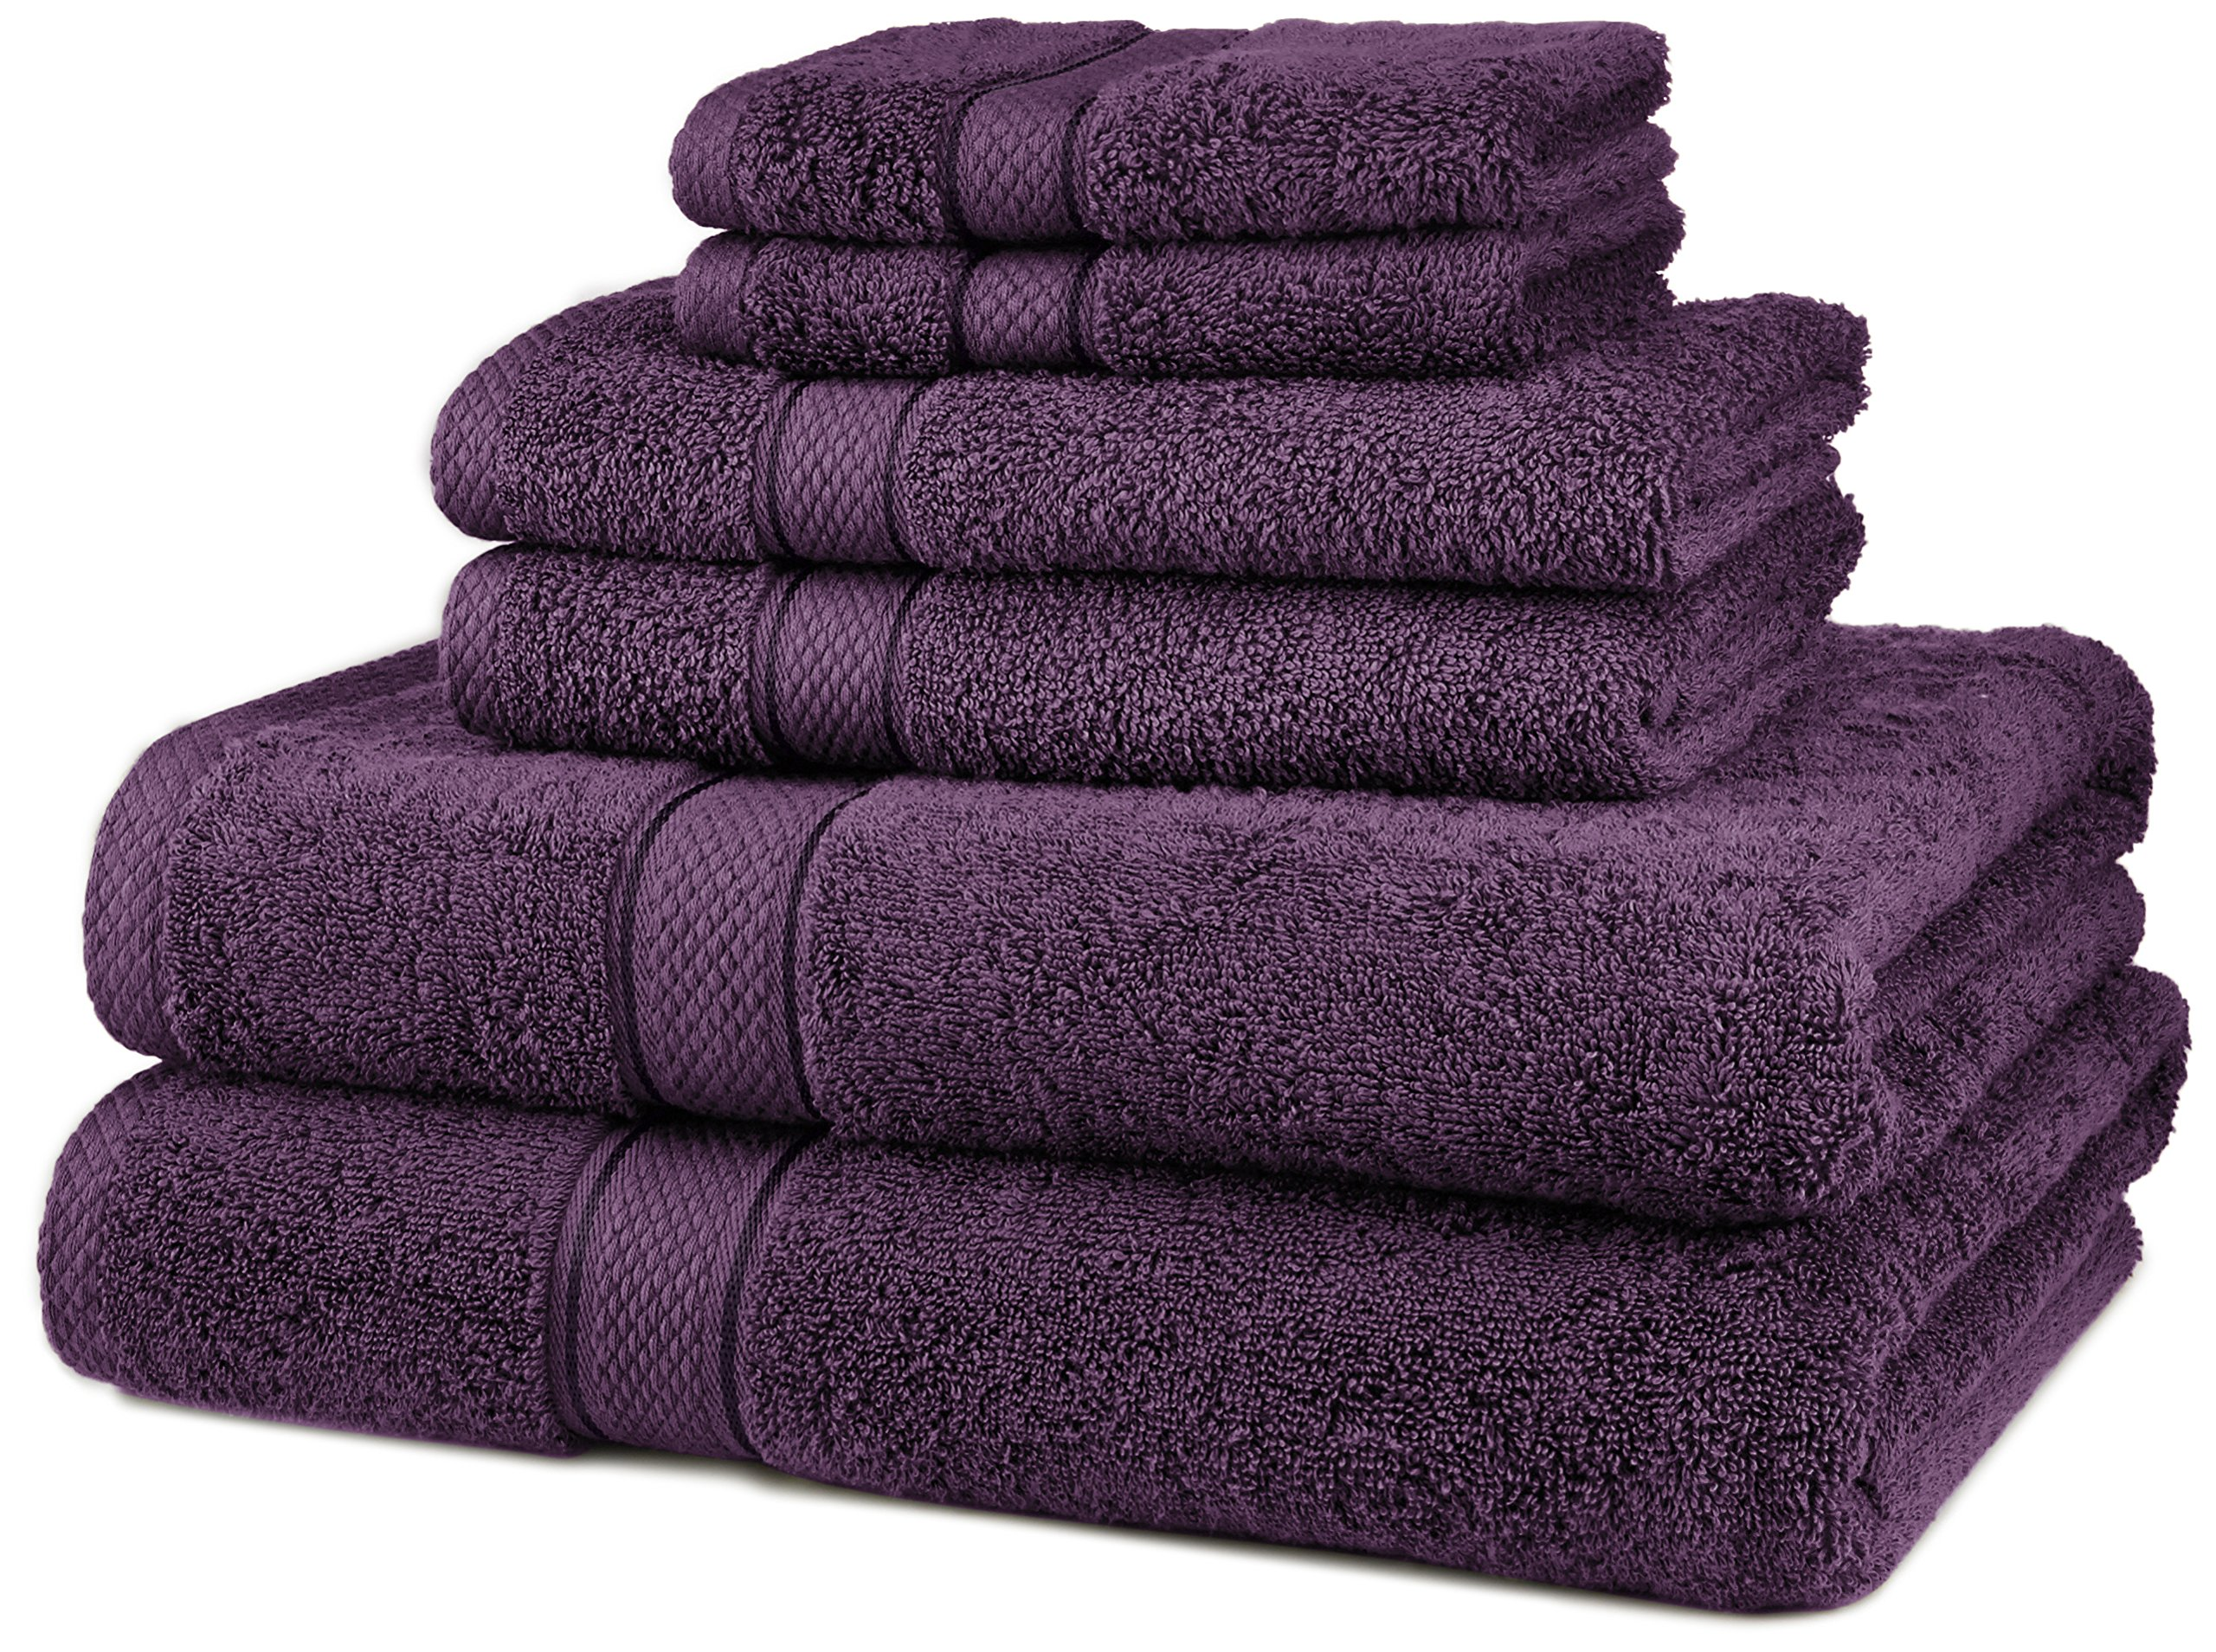 Pinzon Blended Egyptian Cotton 6-Piece Towel Set, Plum